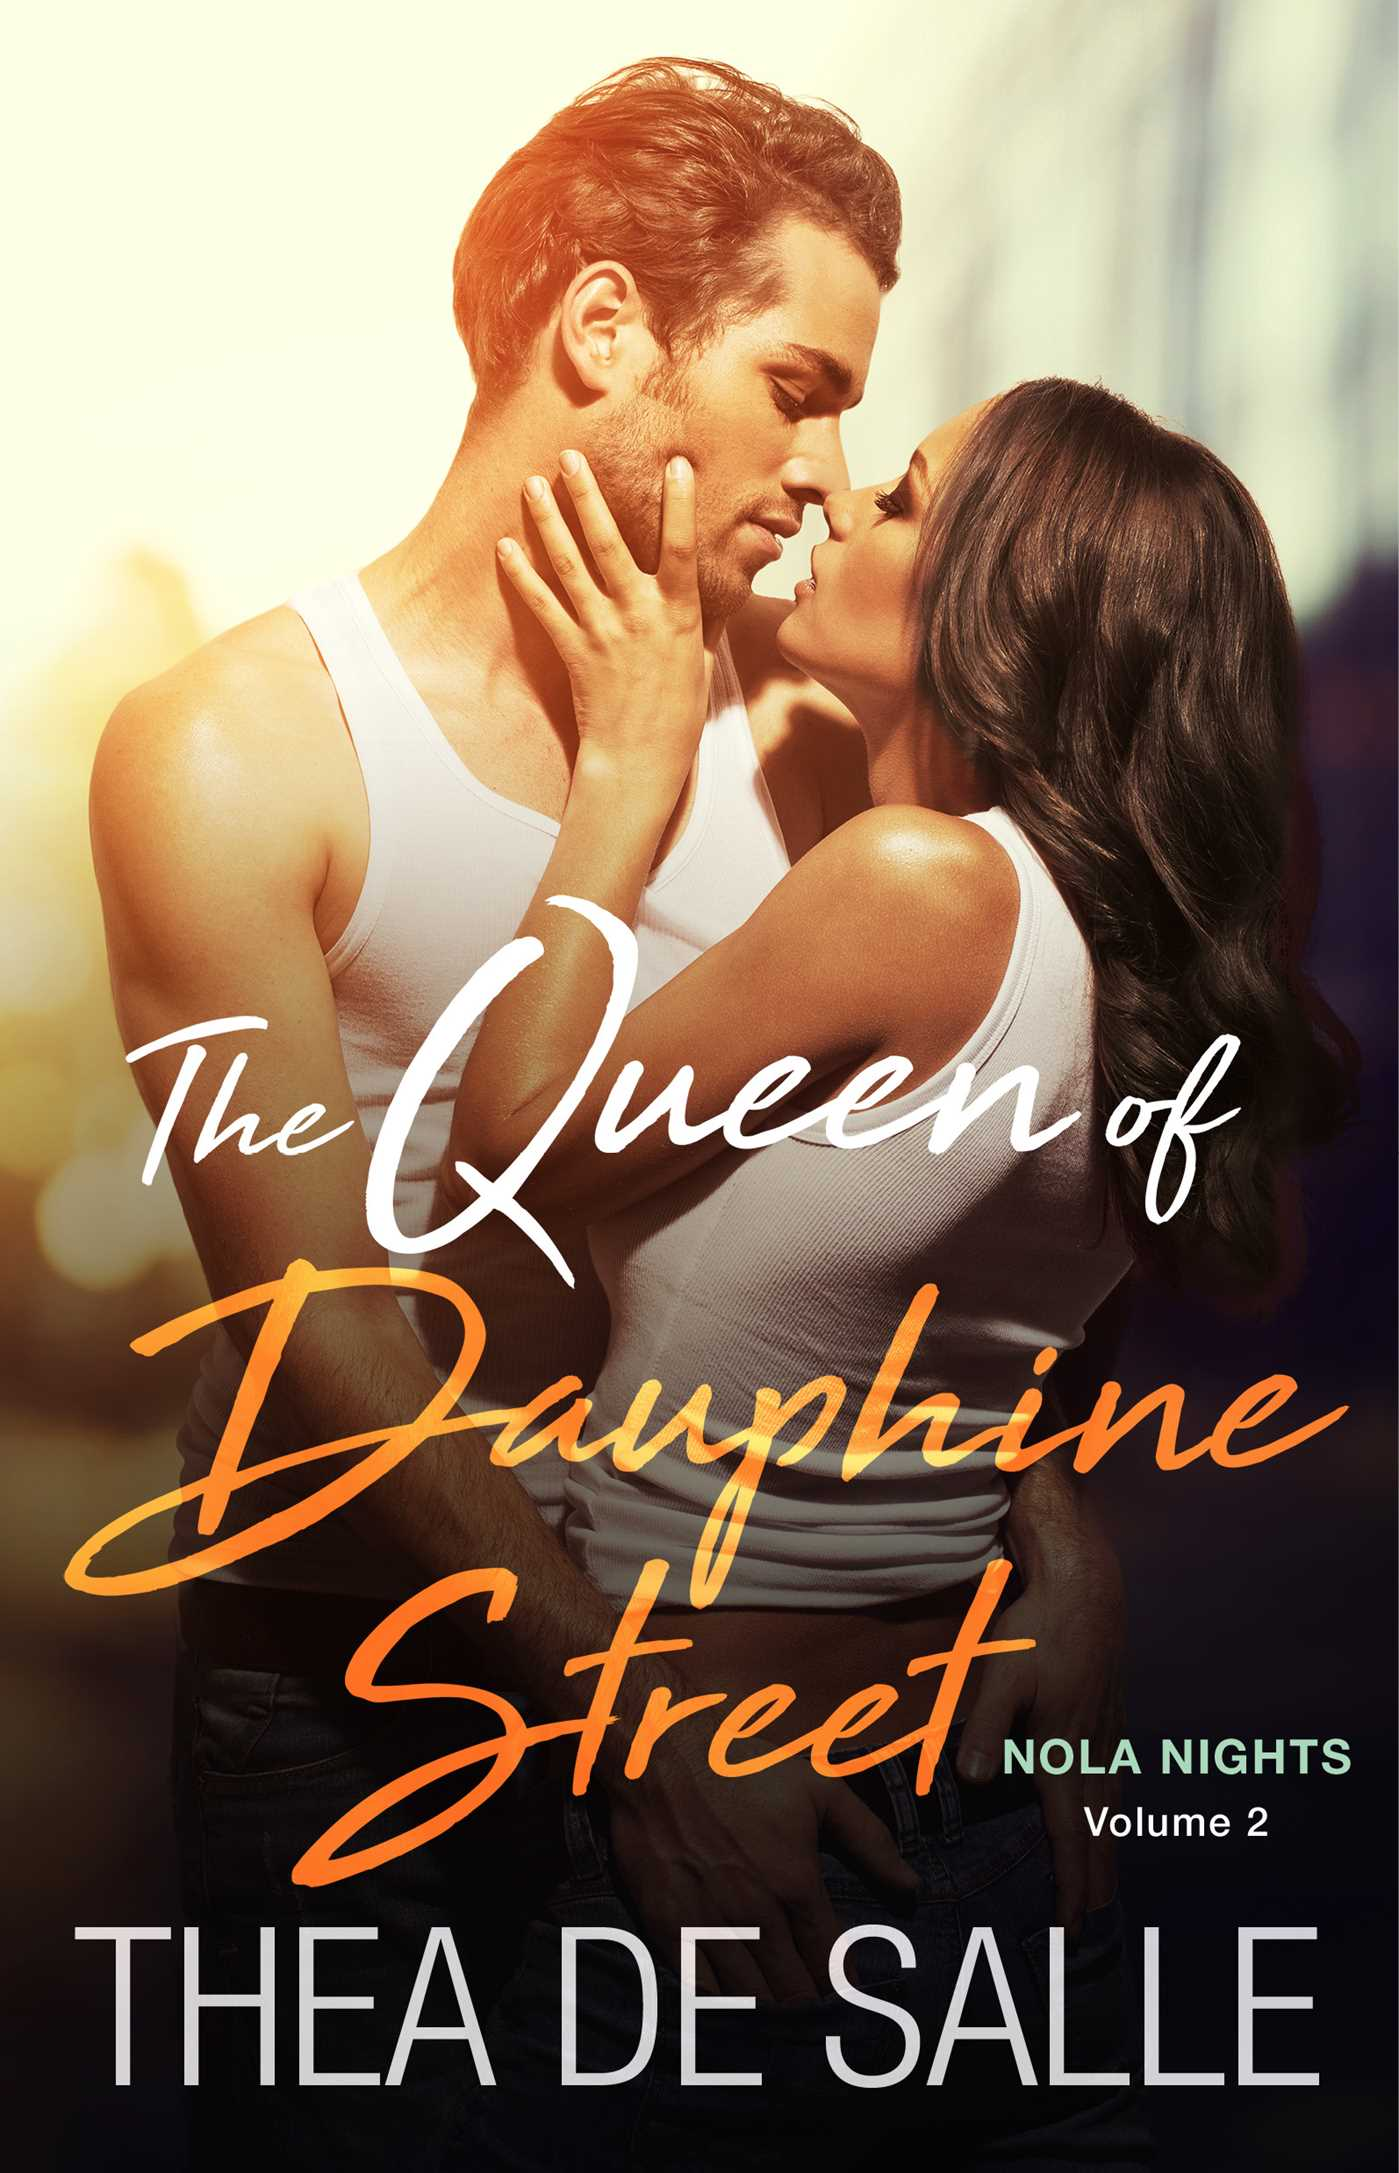 The queen of dauphine street 9781501156090 hr